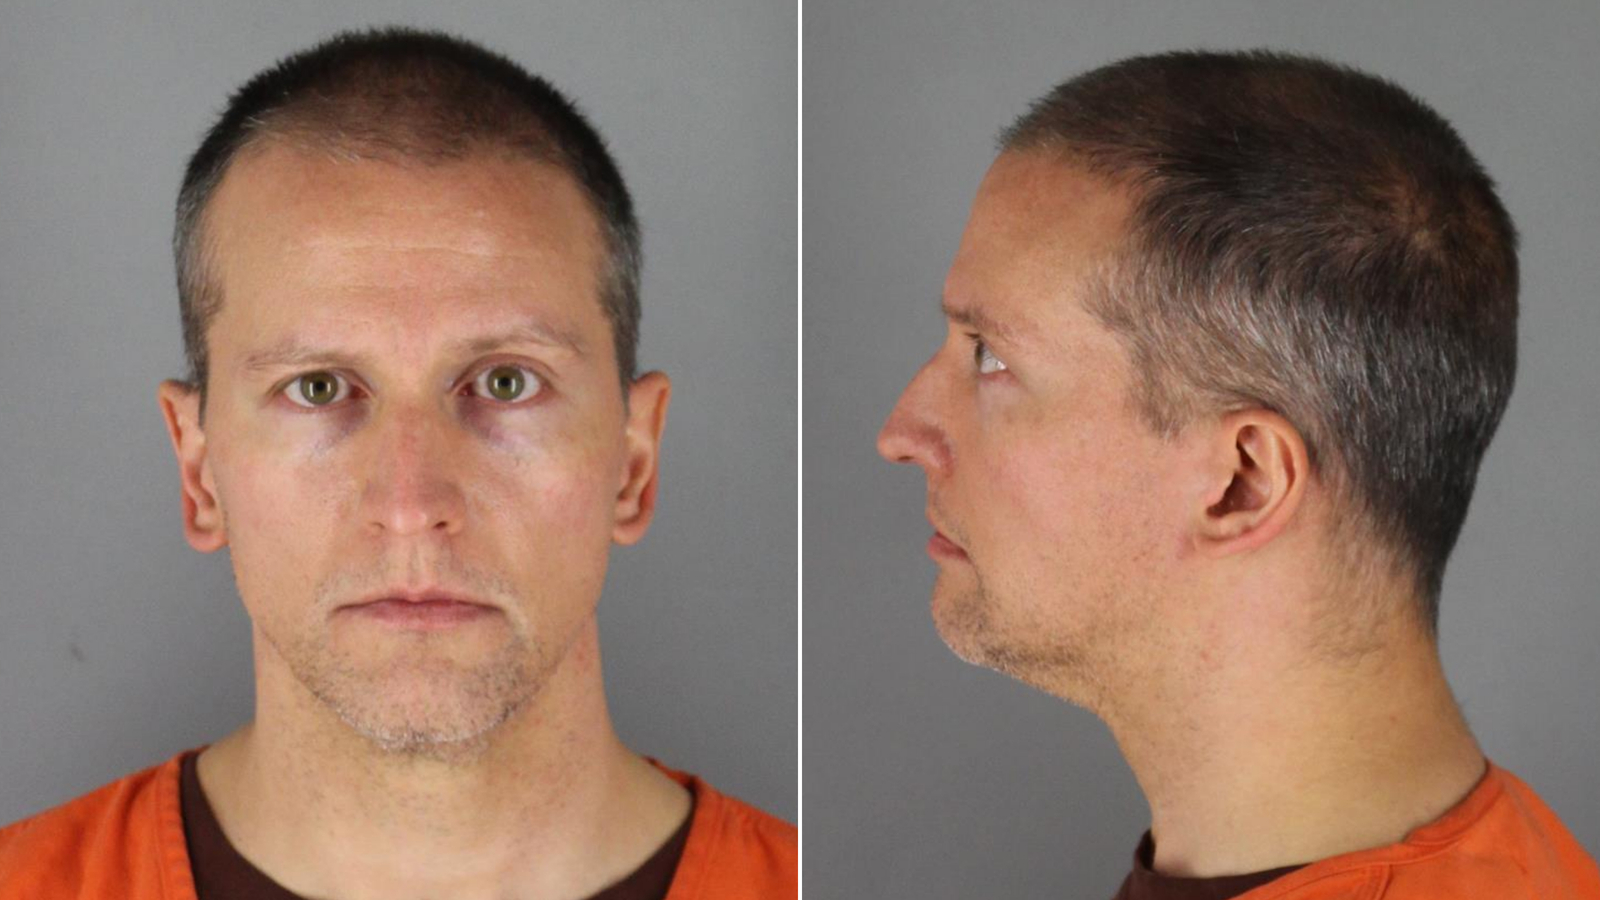 Derek Chauvin is seen in a booking photo released by the Hennepin County Sheriff's Office.